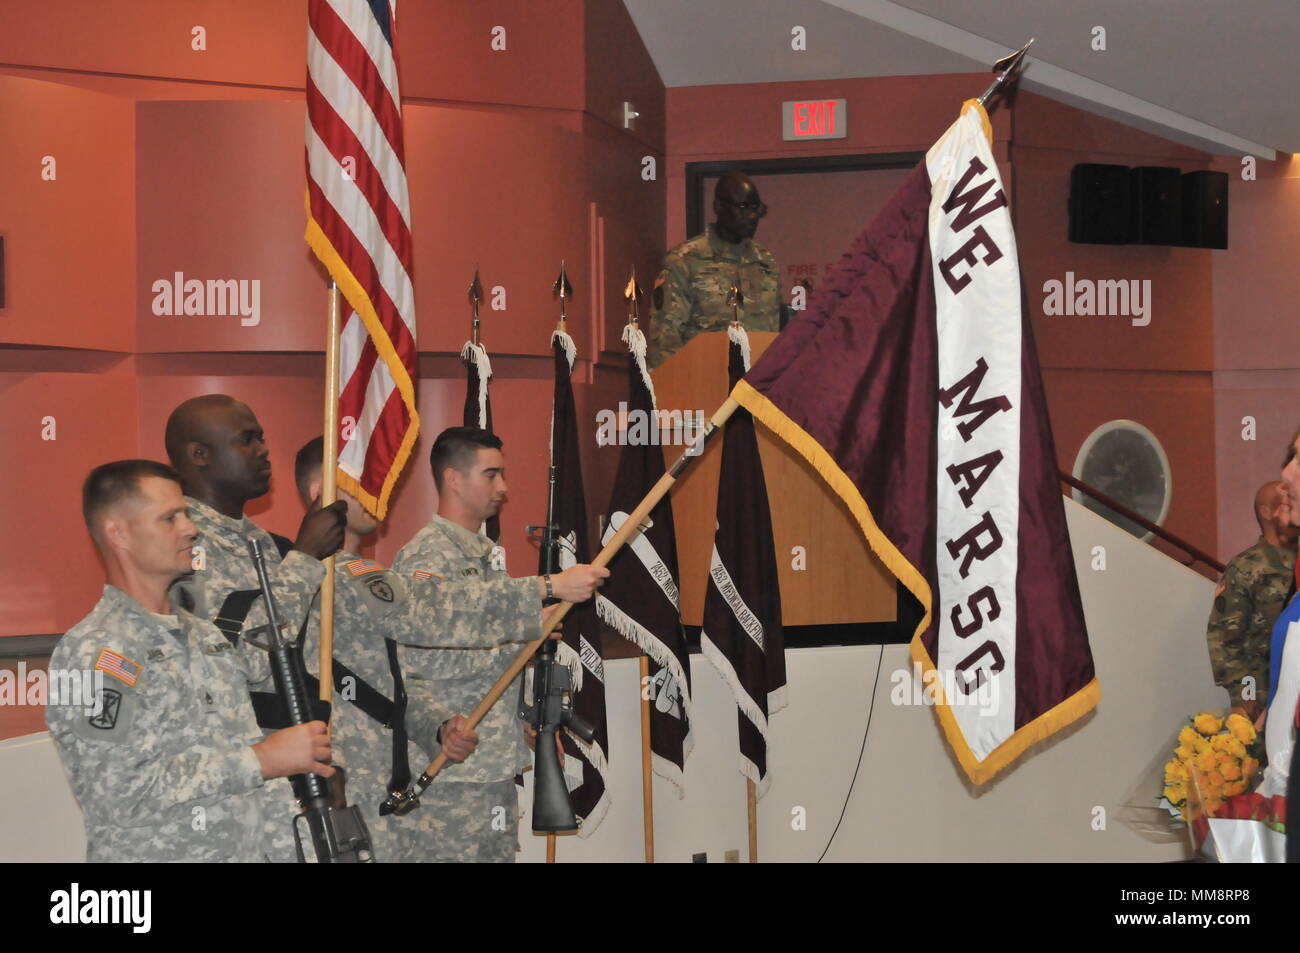 The color guard holds the flags at the start of a Change of Command ceremony of Western Medical Area Readiness Support Group. Then the National Anthem was sung. The change of command is a traditional event rich with symbolism and heritage. Col. Thad Collard is now the commander for the next two years of WE MARSG in San Pablo, California with units in Arizona, Colorado, New Mexico, Nevada, Montana, Washington and California. The change of command happened the 10th of September 2017. - Stock Image